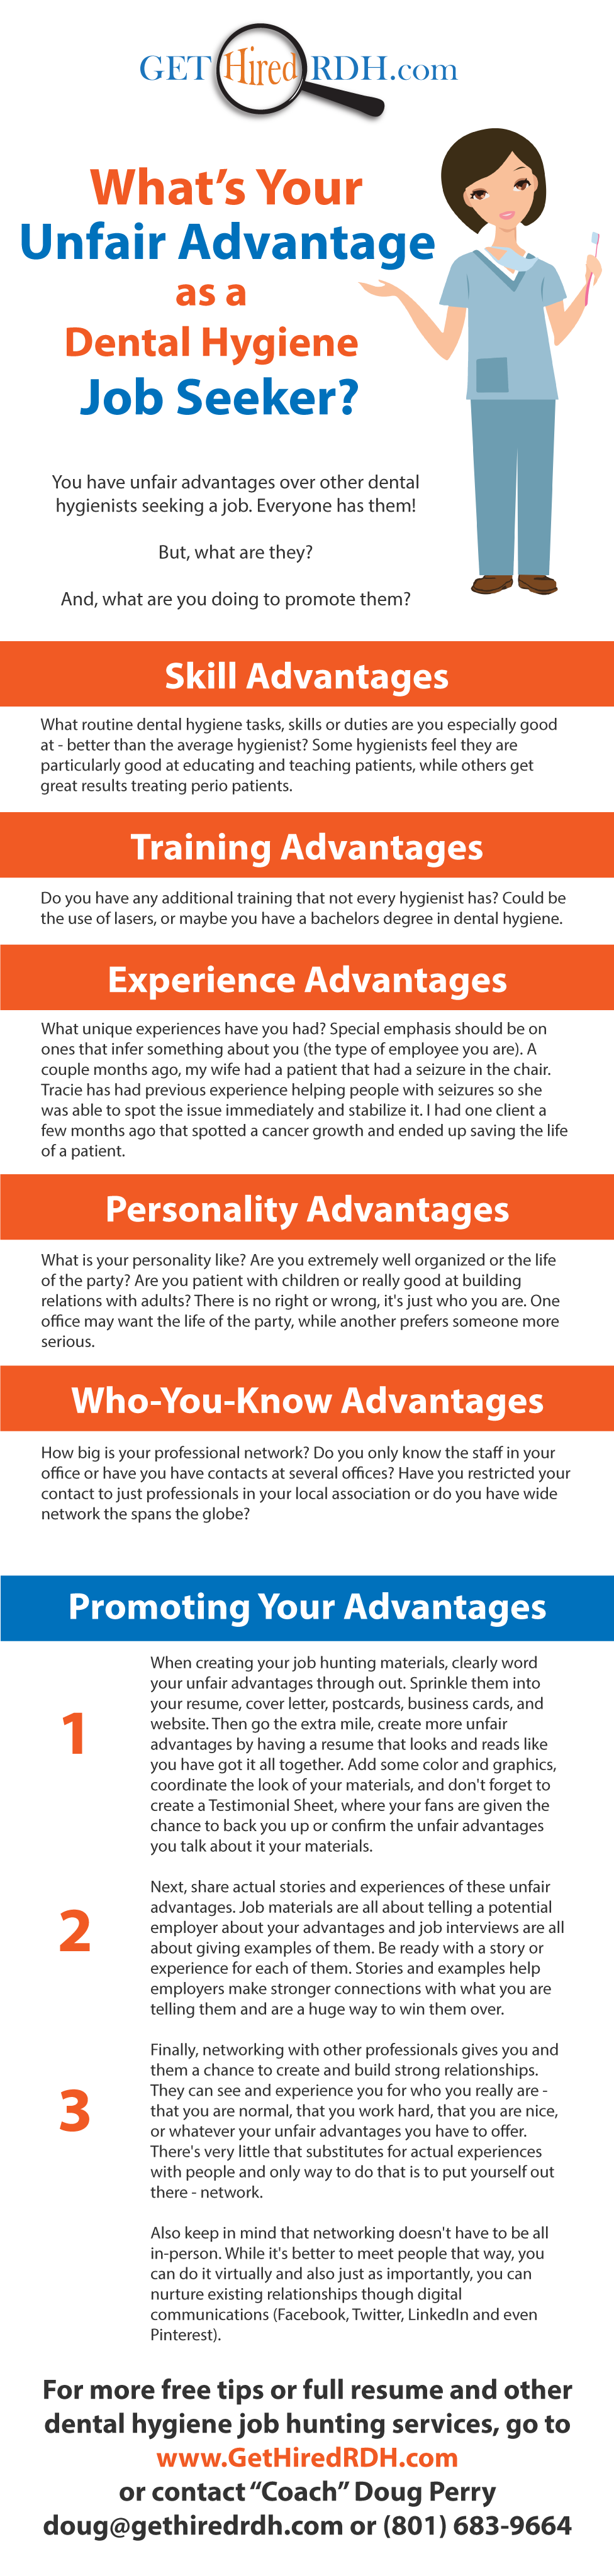 personal brand archives